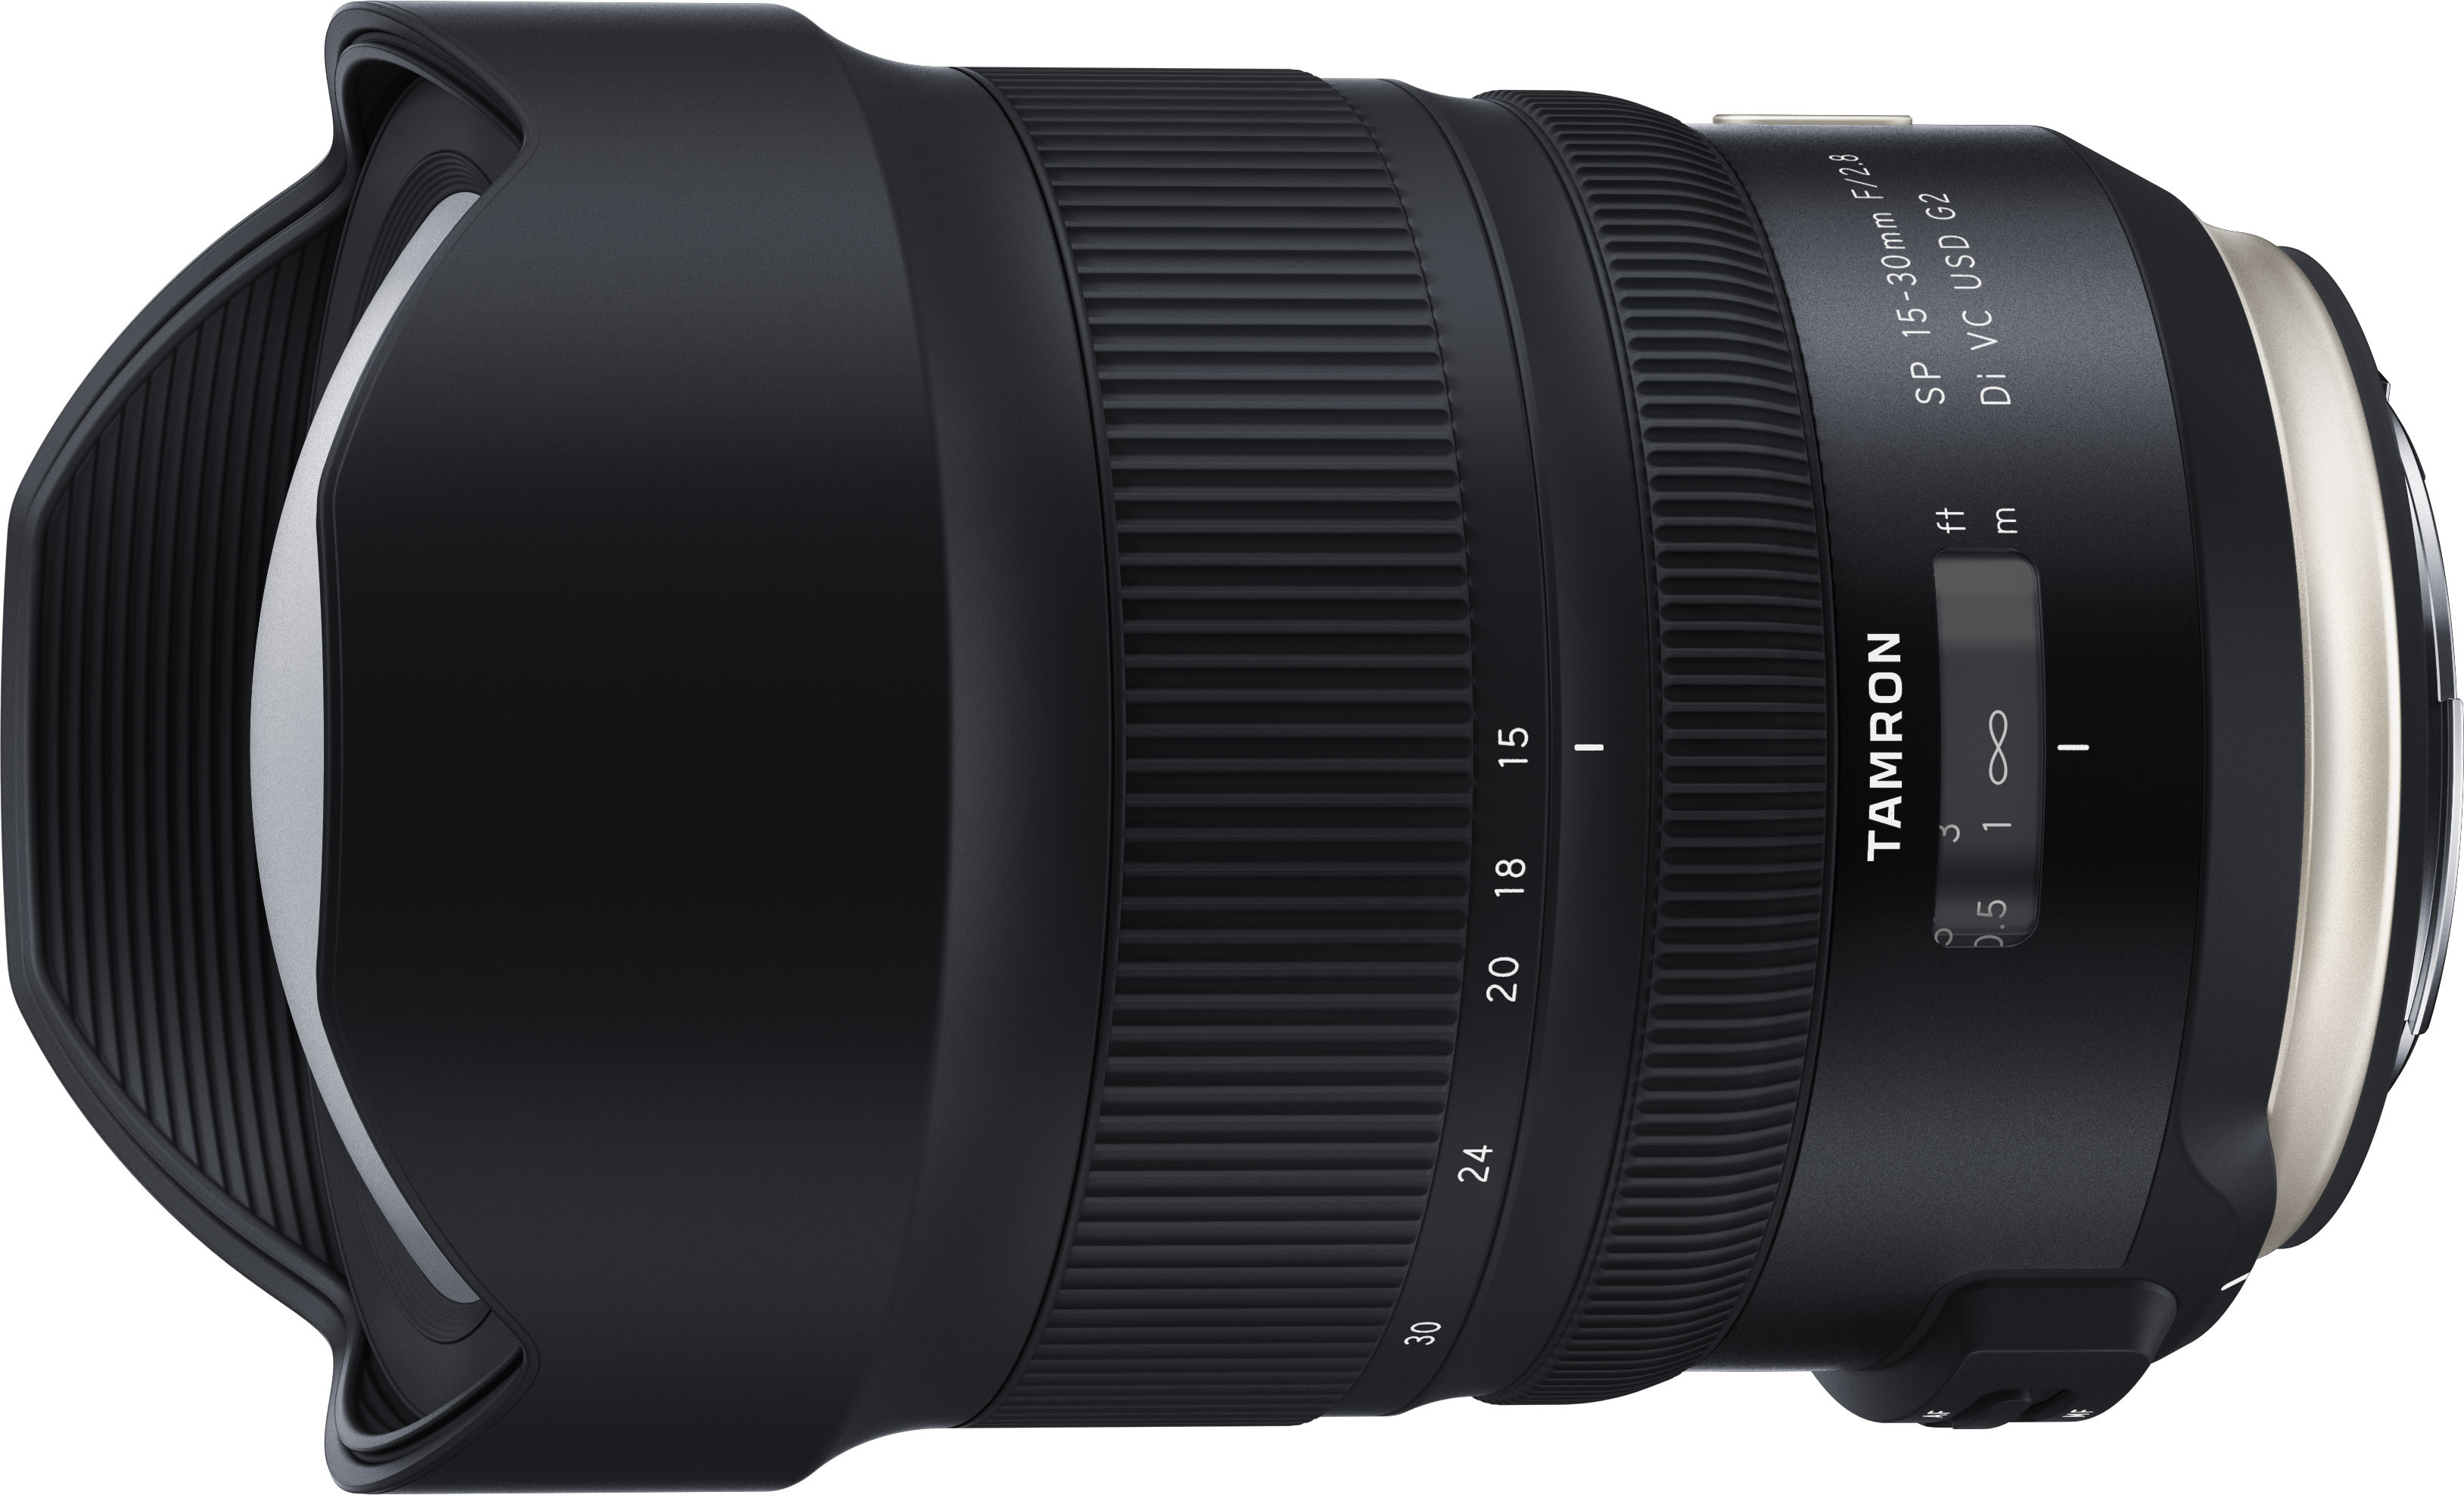 Tamron SP 15-30mm f/2.8 Di VC USD G2 objektiiv Can..